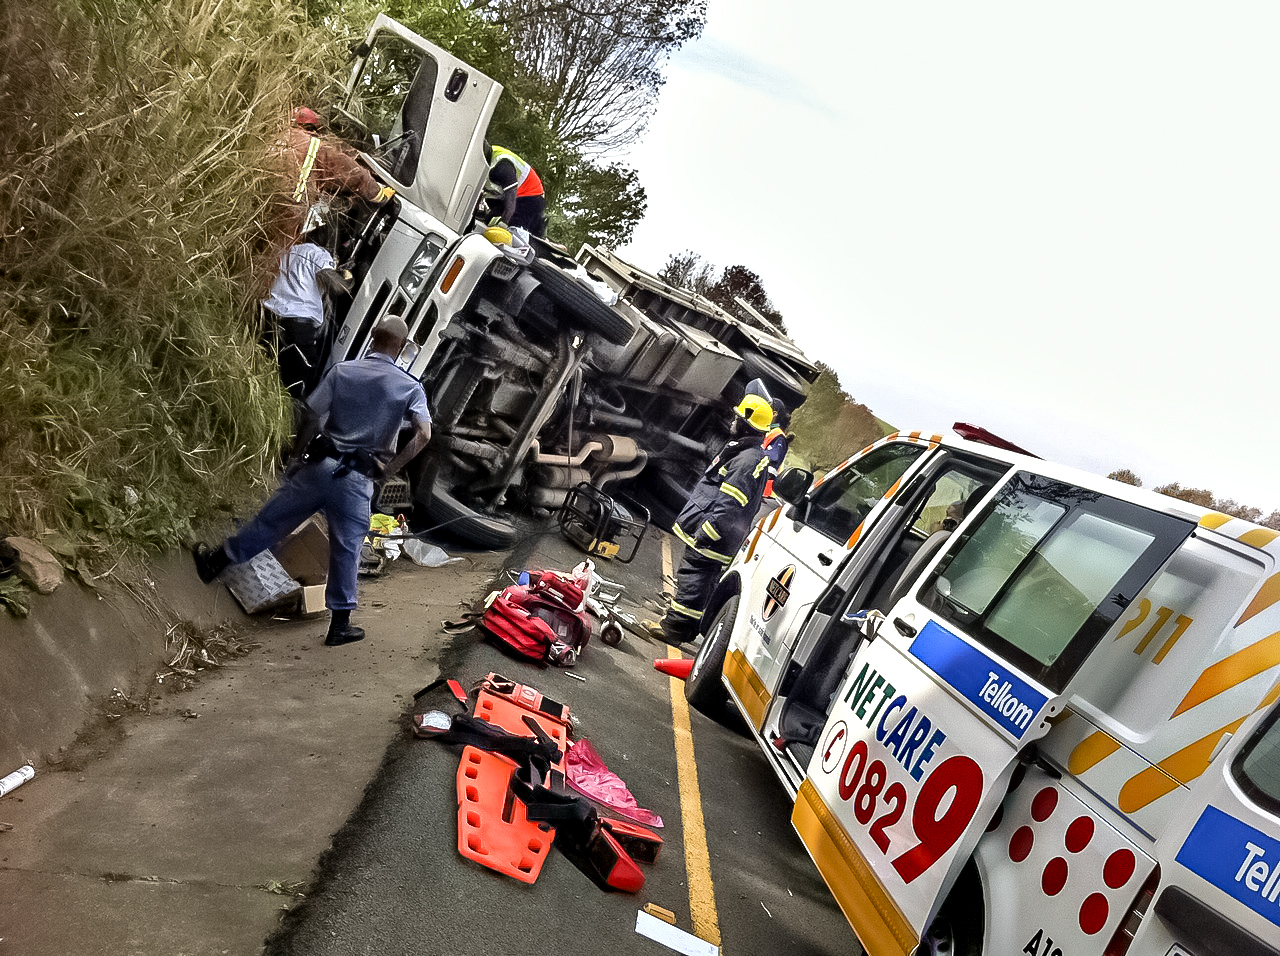 R 603 Mkhambathini truck crash leaves two injured